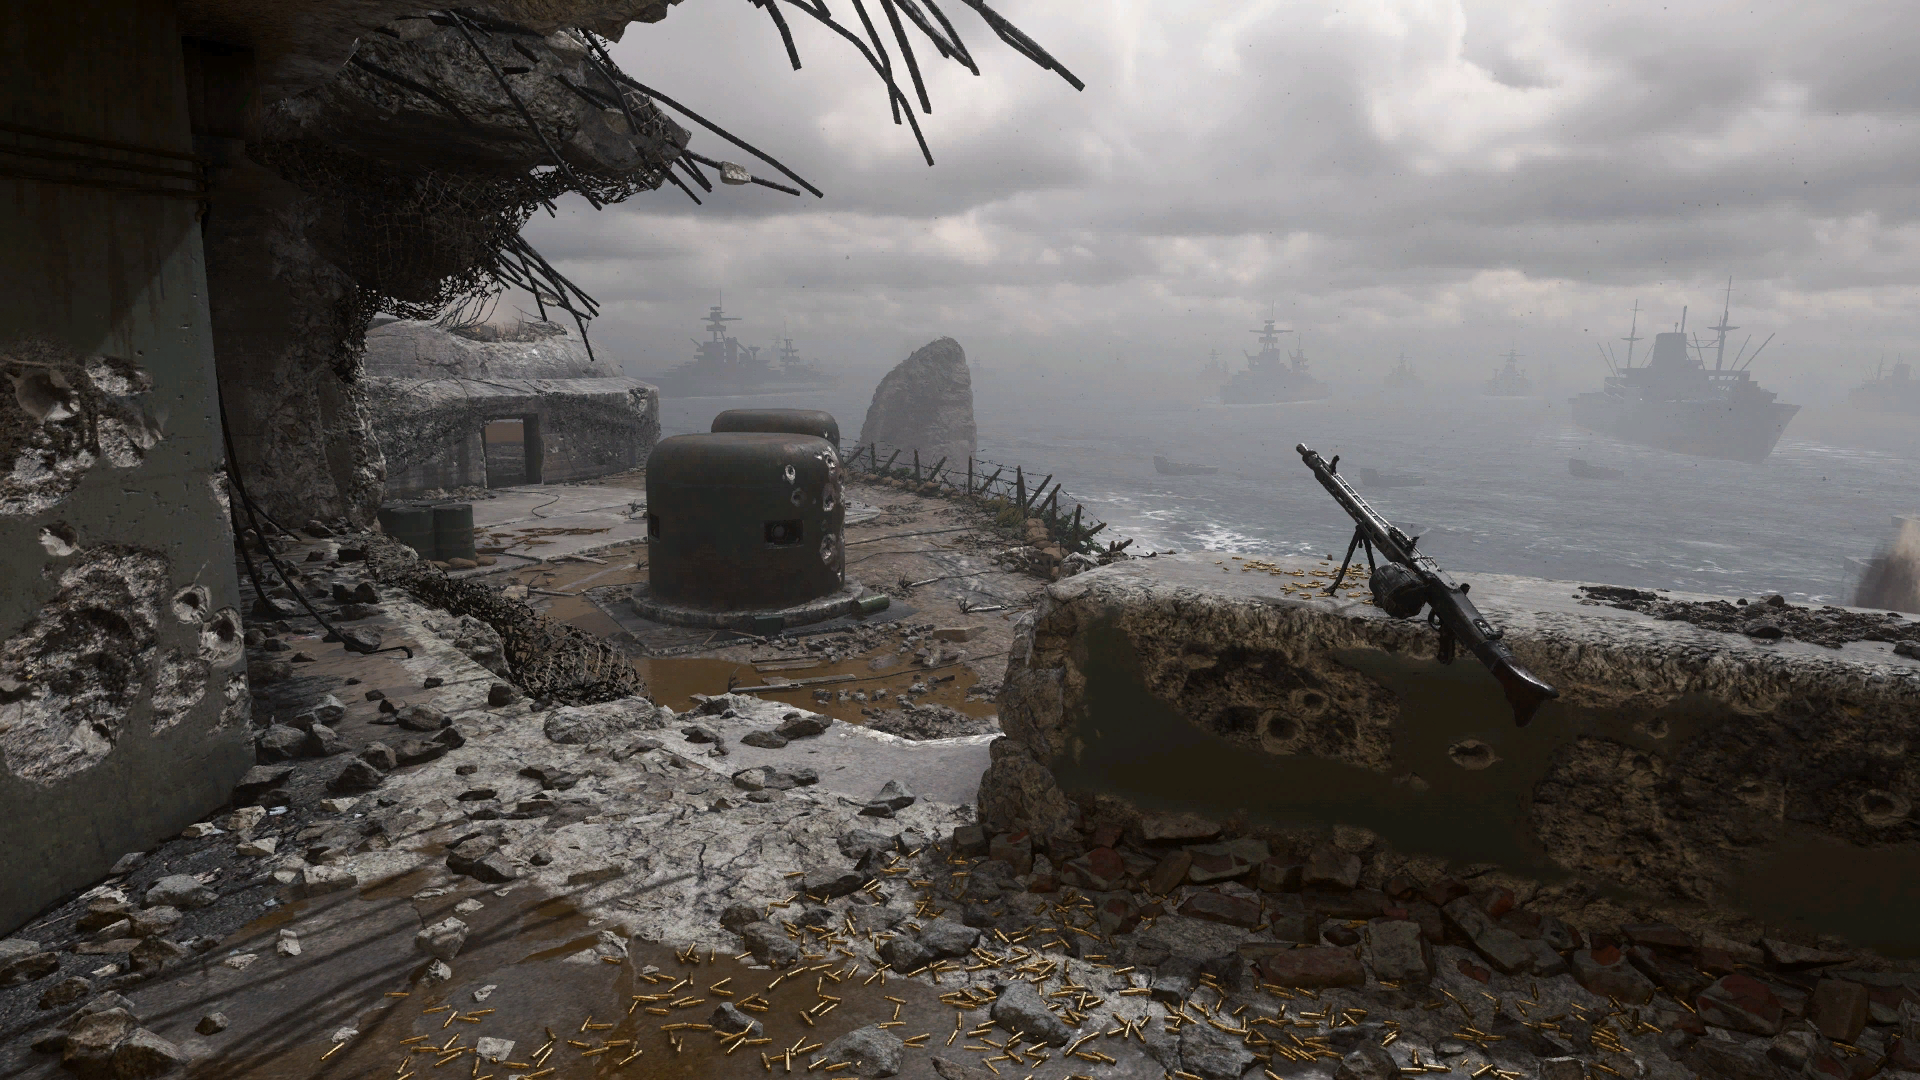 new call of duty zombies map with Pointe Du Hoc  Map on Mw3 Face Off Maps Detailed In First Screens Video in addition Pointe du Hoc  map moreover Cod Black Ops Iii Steps Into The Shadows Of Evil together with New Cod Black Ops 3 Content 2017 likewise Bo3 Live Wallpaper.